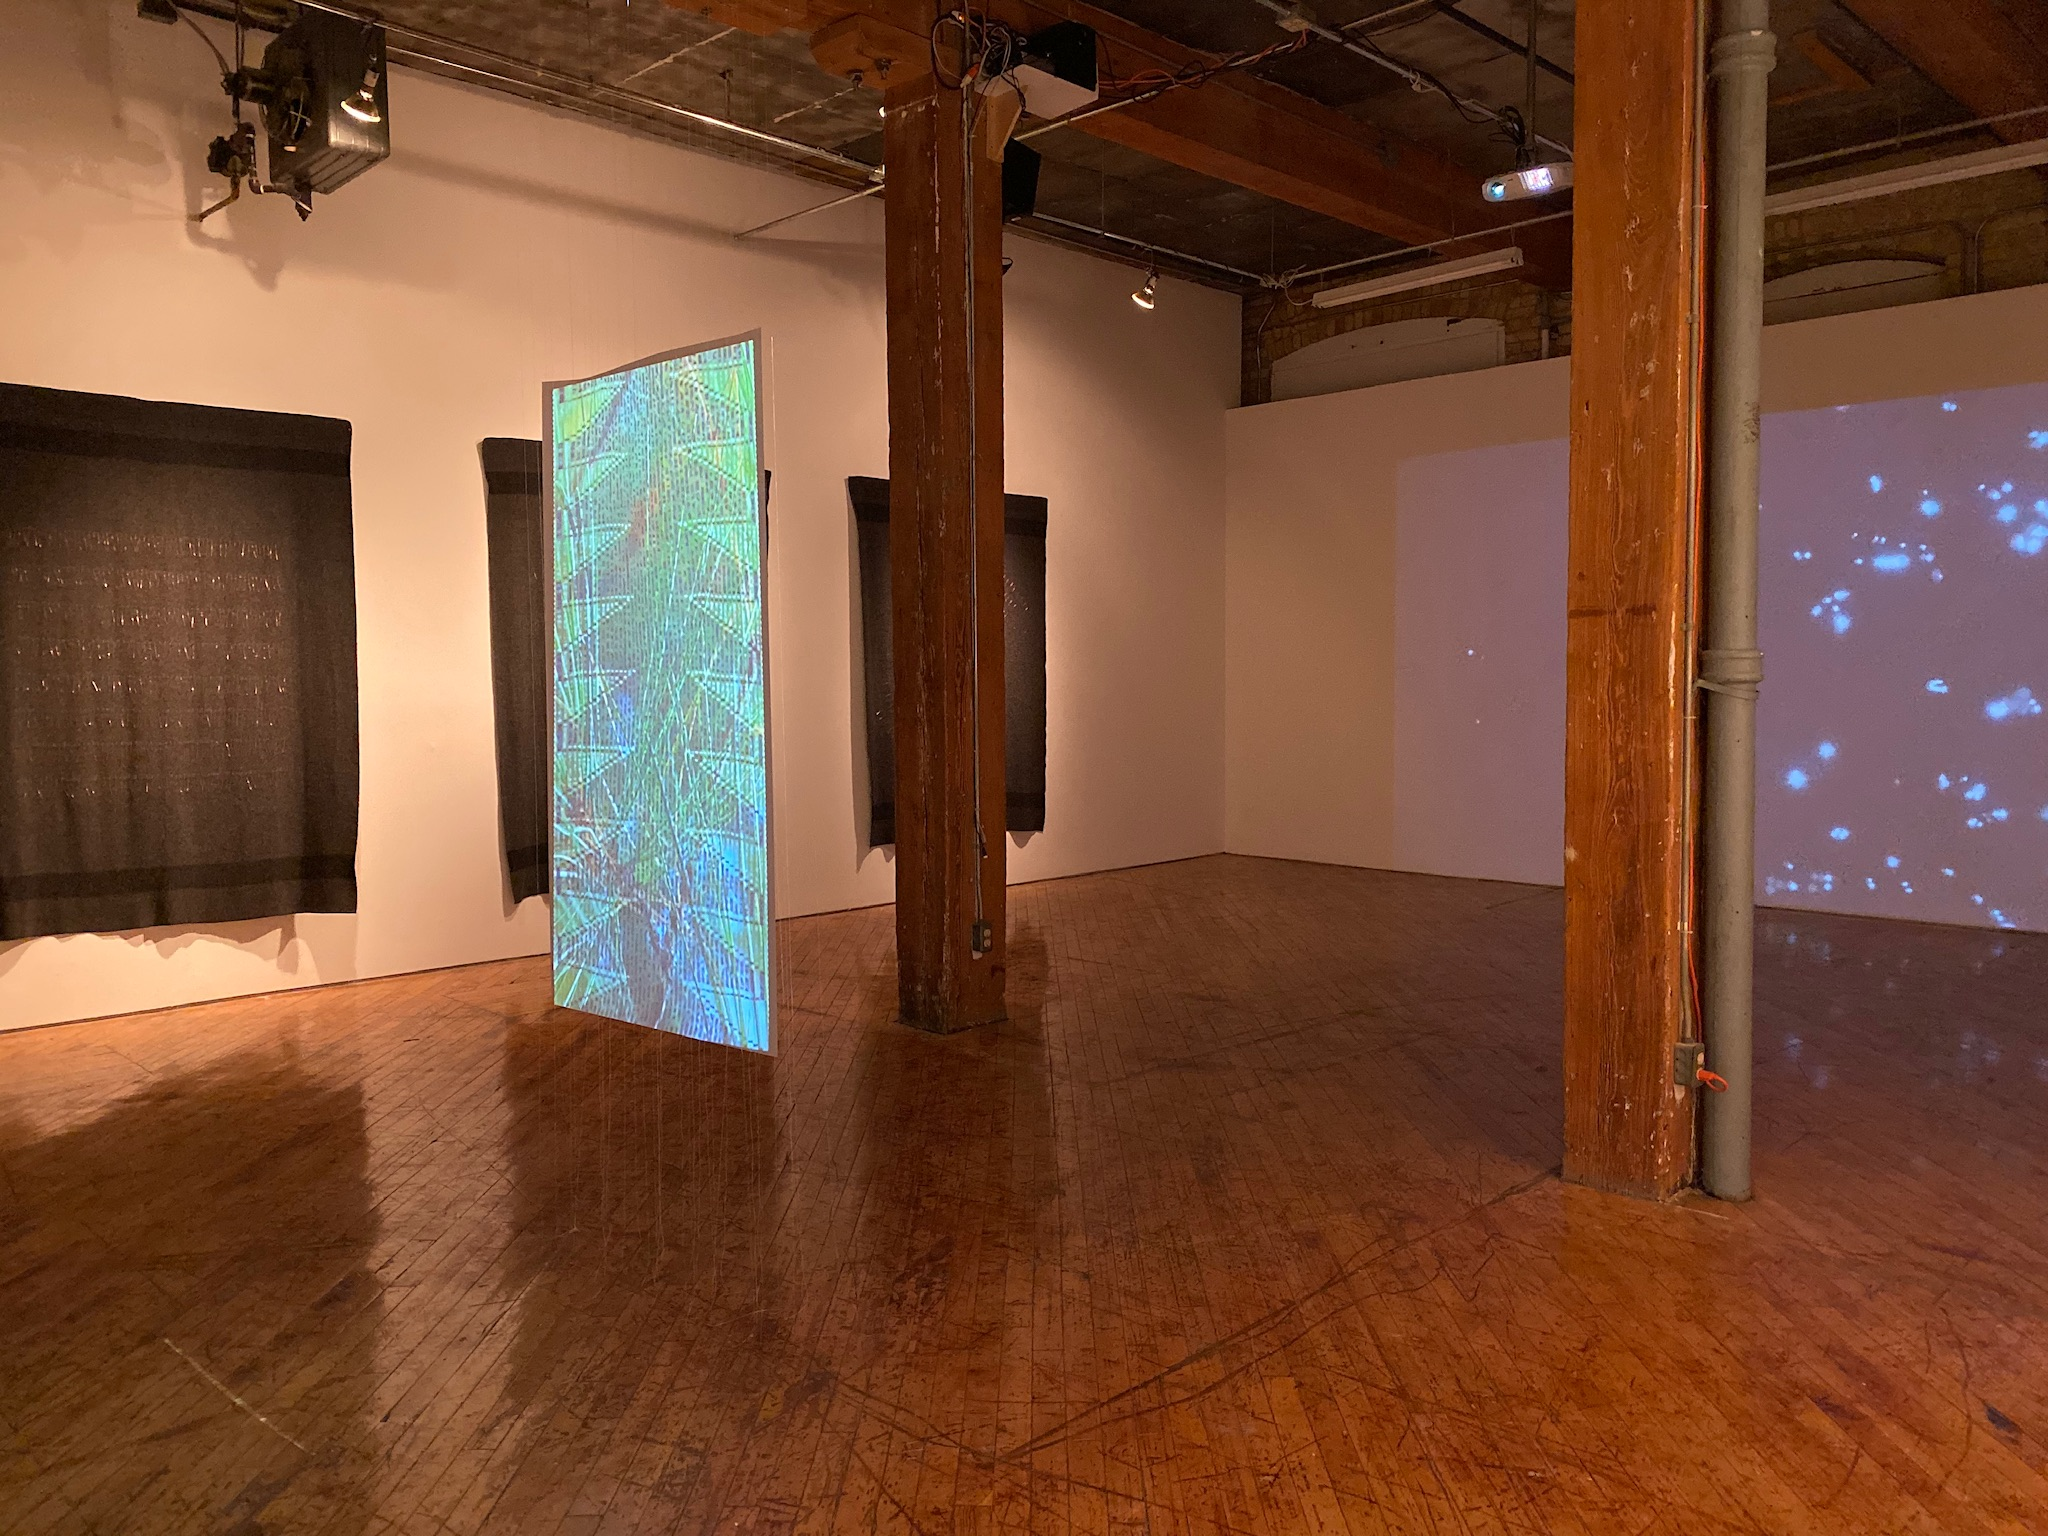 spatial codifications (exhibition view), Hannah Claus 2019